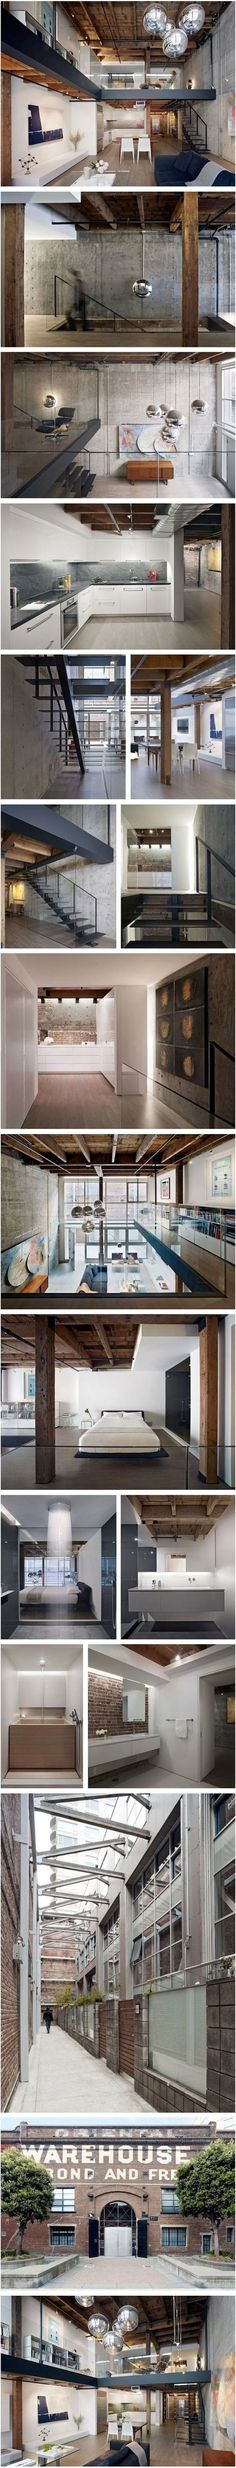 Creative Loft Bedroom decorating Ideas white and silver | contemporary industrial loft with high ceilings and contemporary overhead lighting and large artwork | modern wall art | modern residential interior design ideas | city apartment